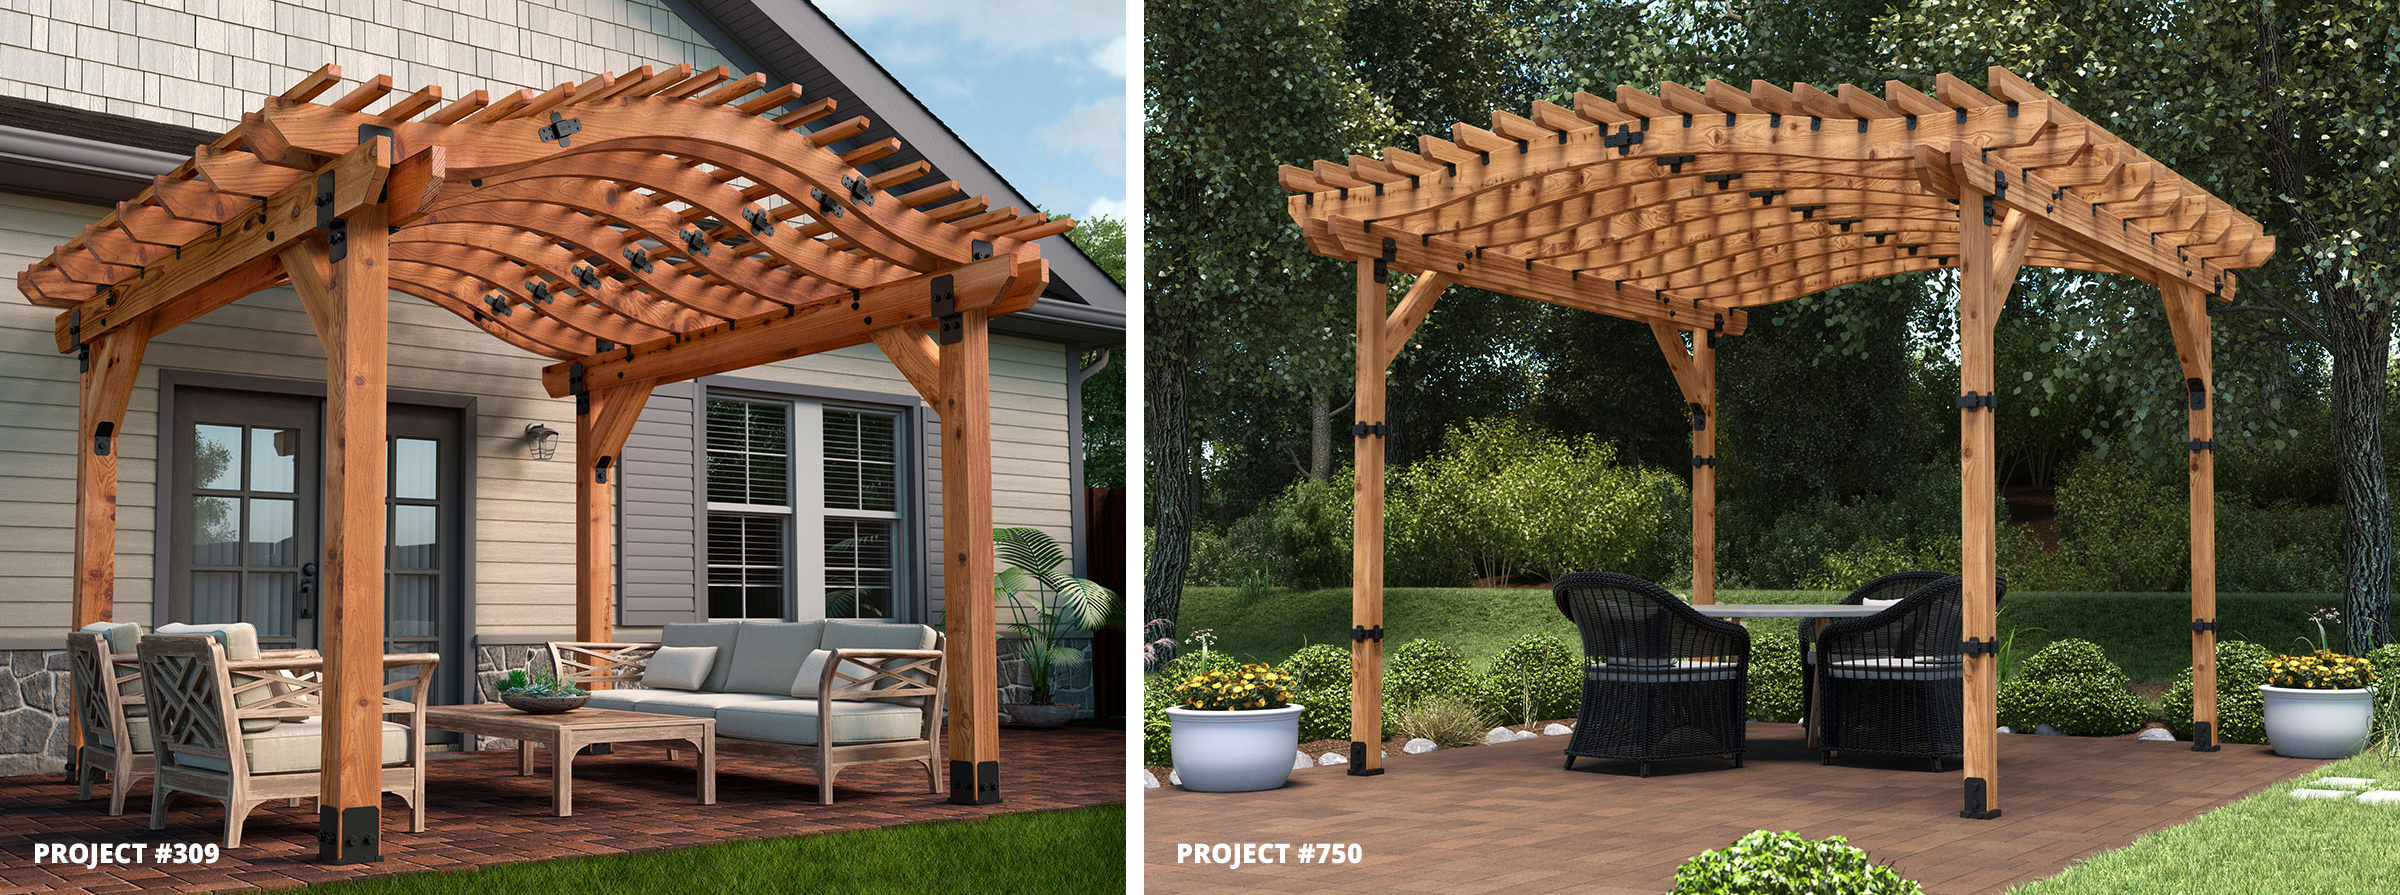 Pergola with Curve Appeal Curved Rafters